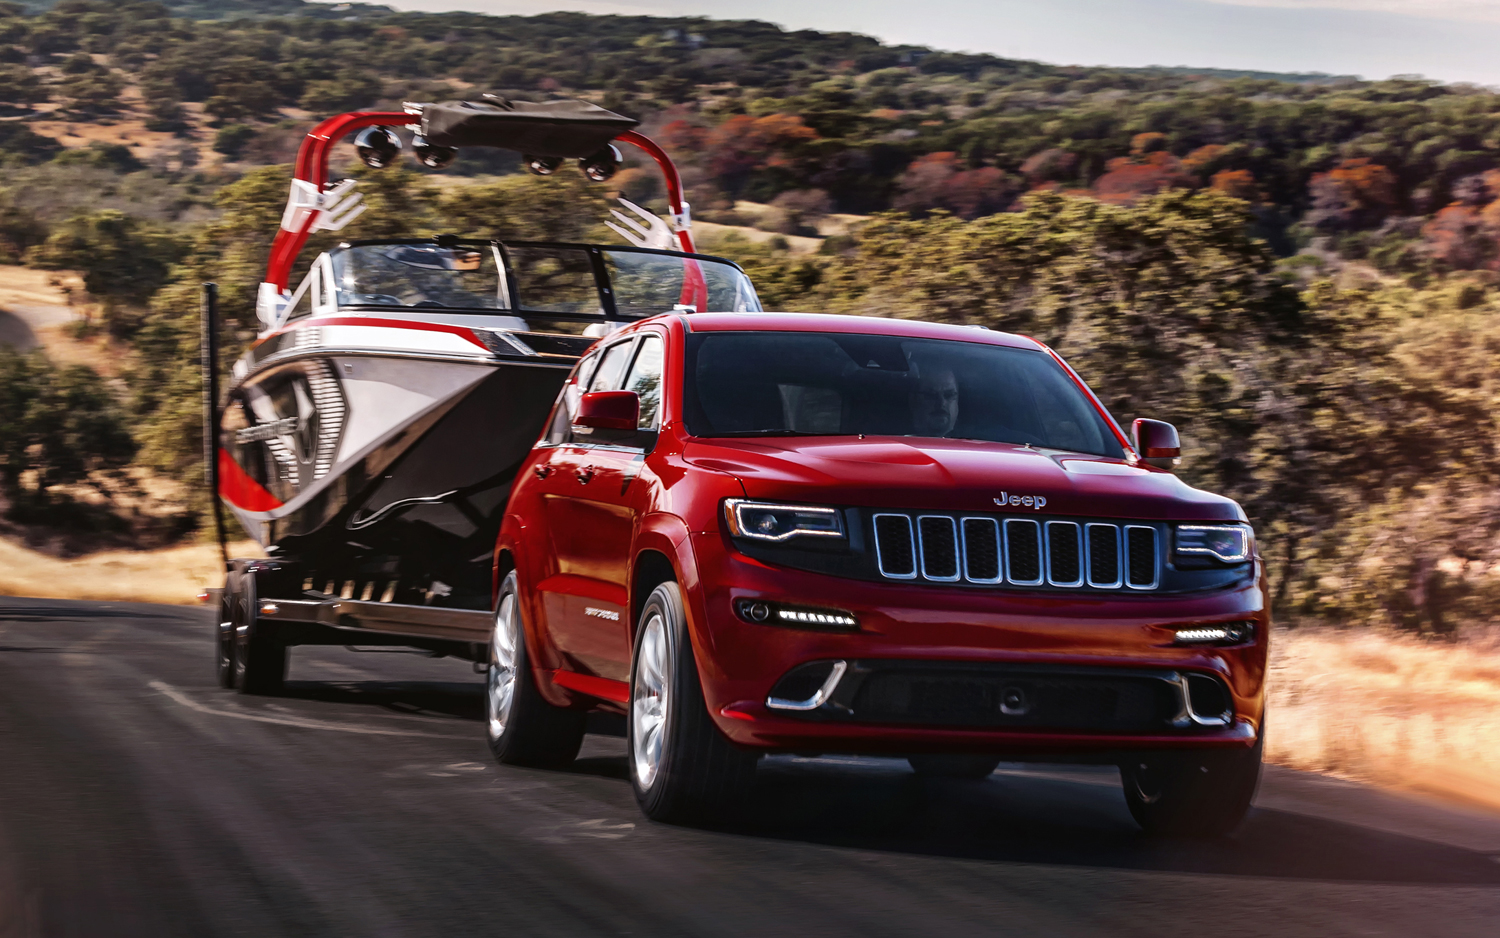 2019 Jeep Grand Cherokee SRT8 photo - 1